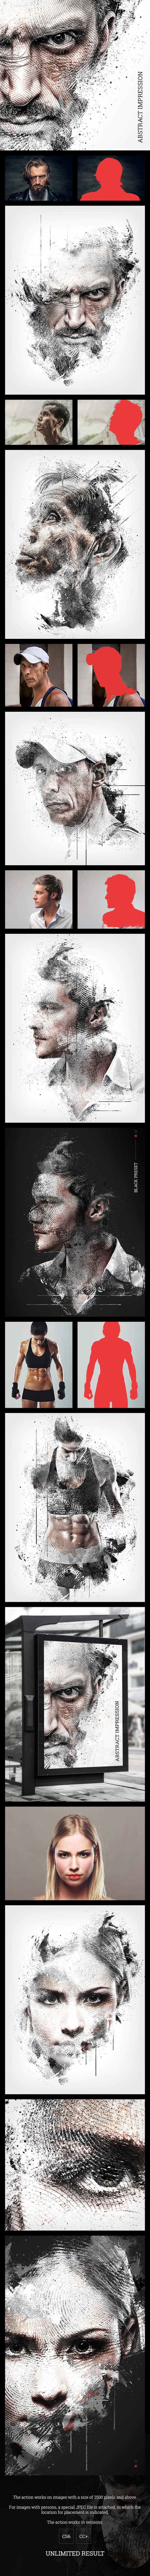 Abstract Impression Photoshop Action - Photo Effects Actions